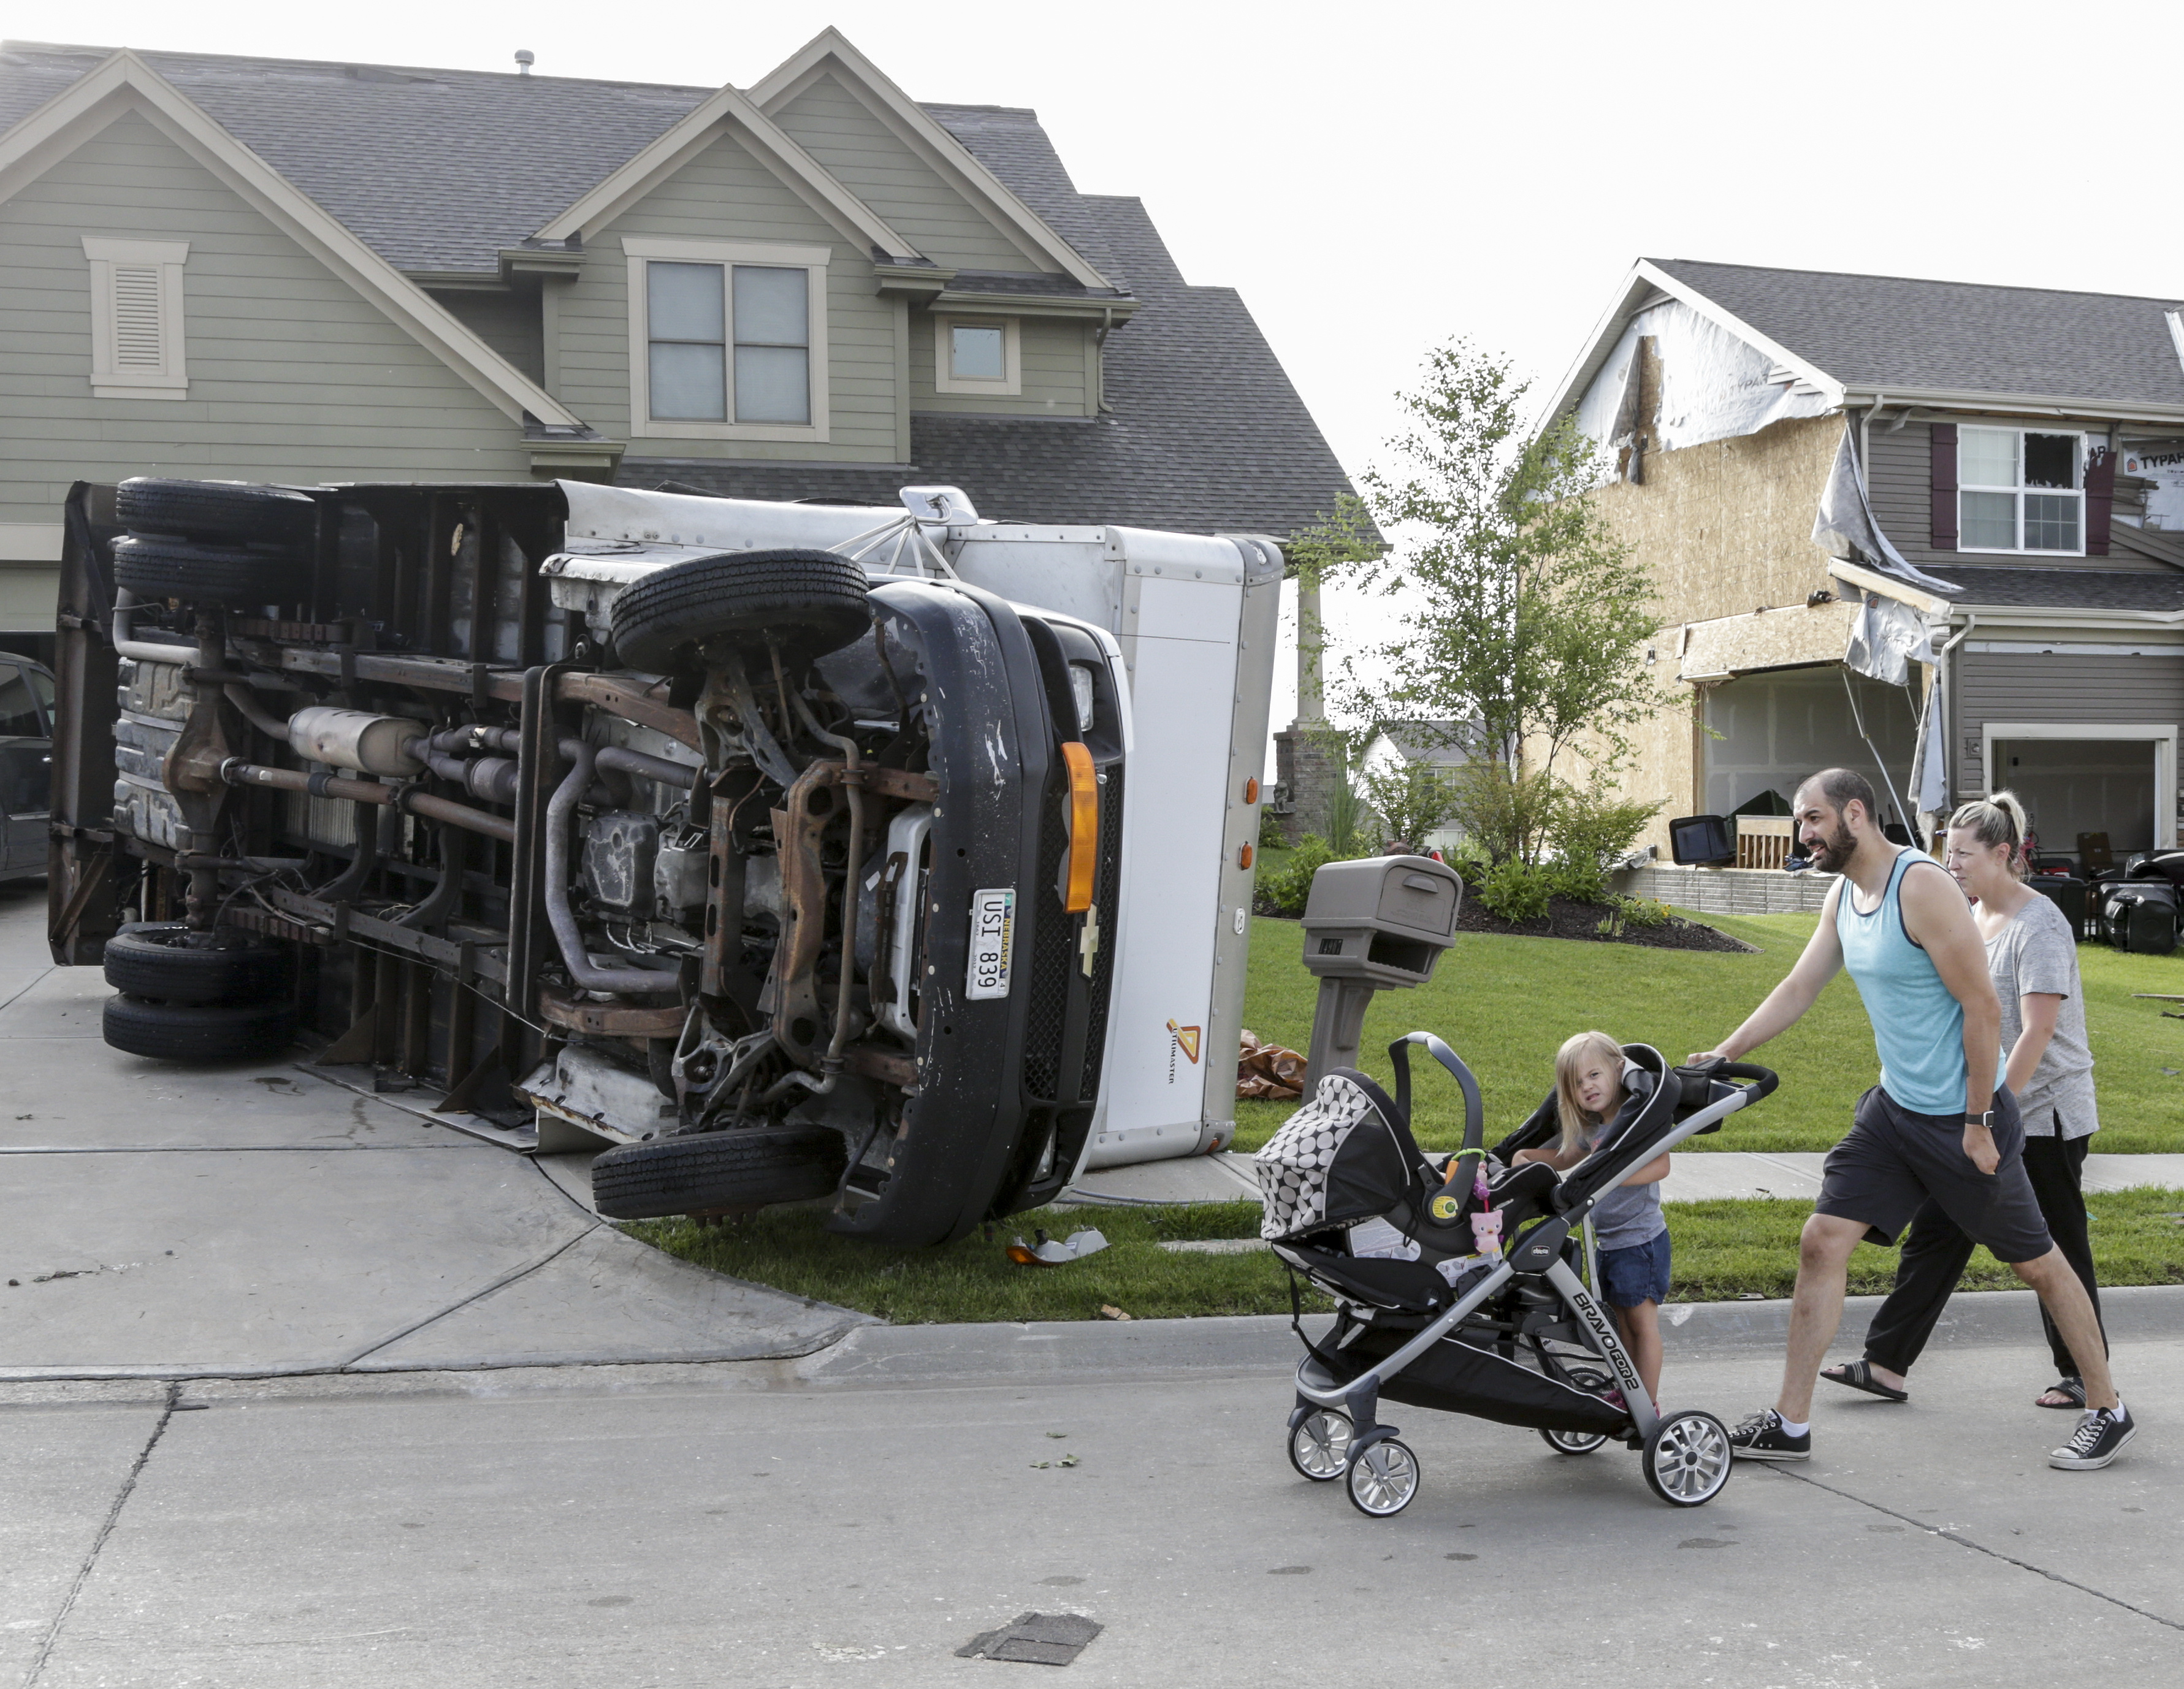 Vincent and Lindsey Mercado and their children walk past an overturned truck and weather damaged homes in the Hyda Hills neighborhood in Bellevue, Neb., Saturday, June 17, 2017. A severe weather front passed through the area the previous evening. (AP Photo/Nati Harnik)